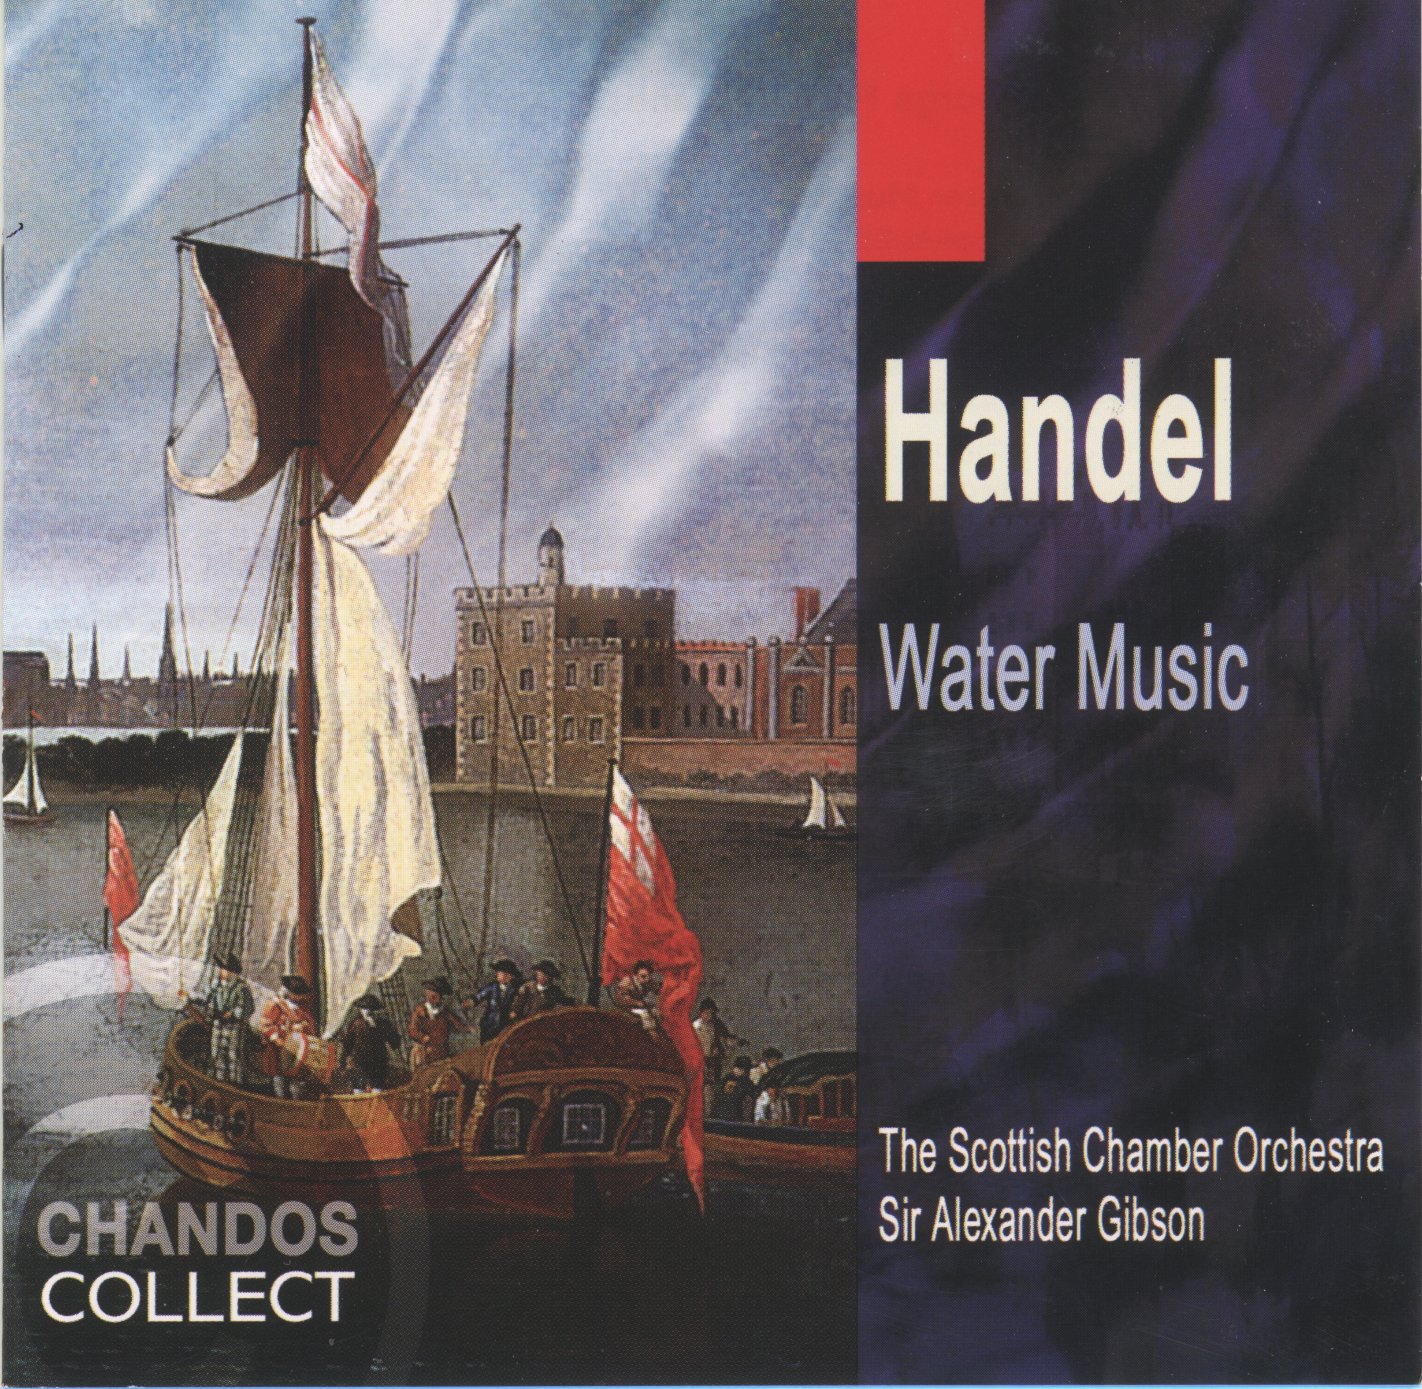 Handel: Water Music Orchestral & Concertos Collect